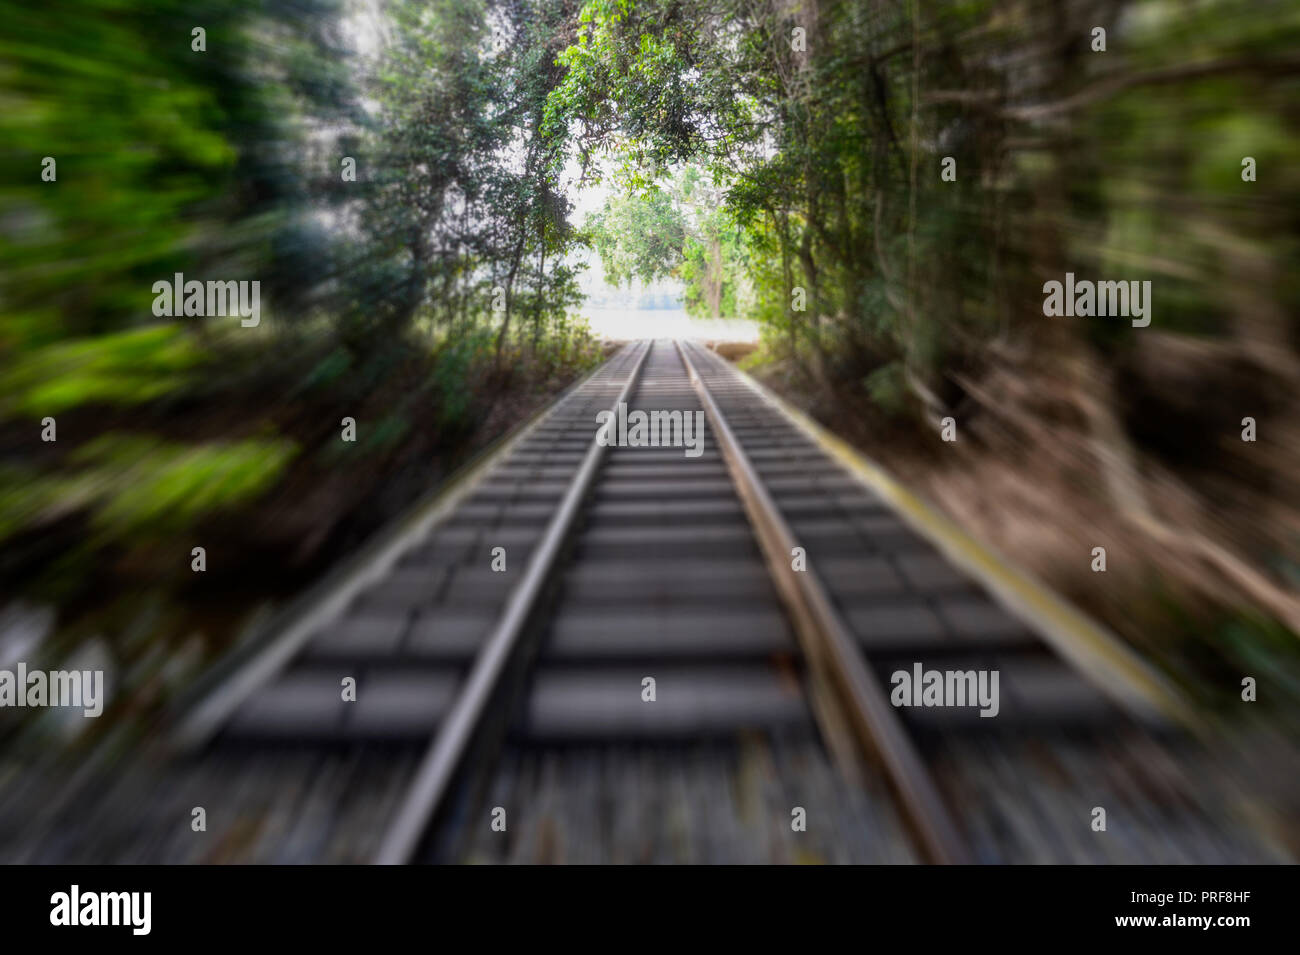 Seeing the light at the end of the tunnel concept - Stock Image